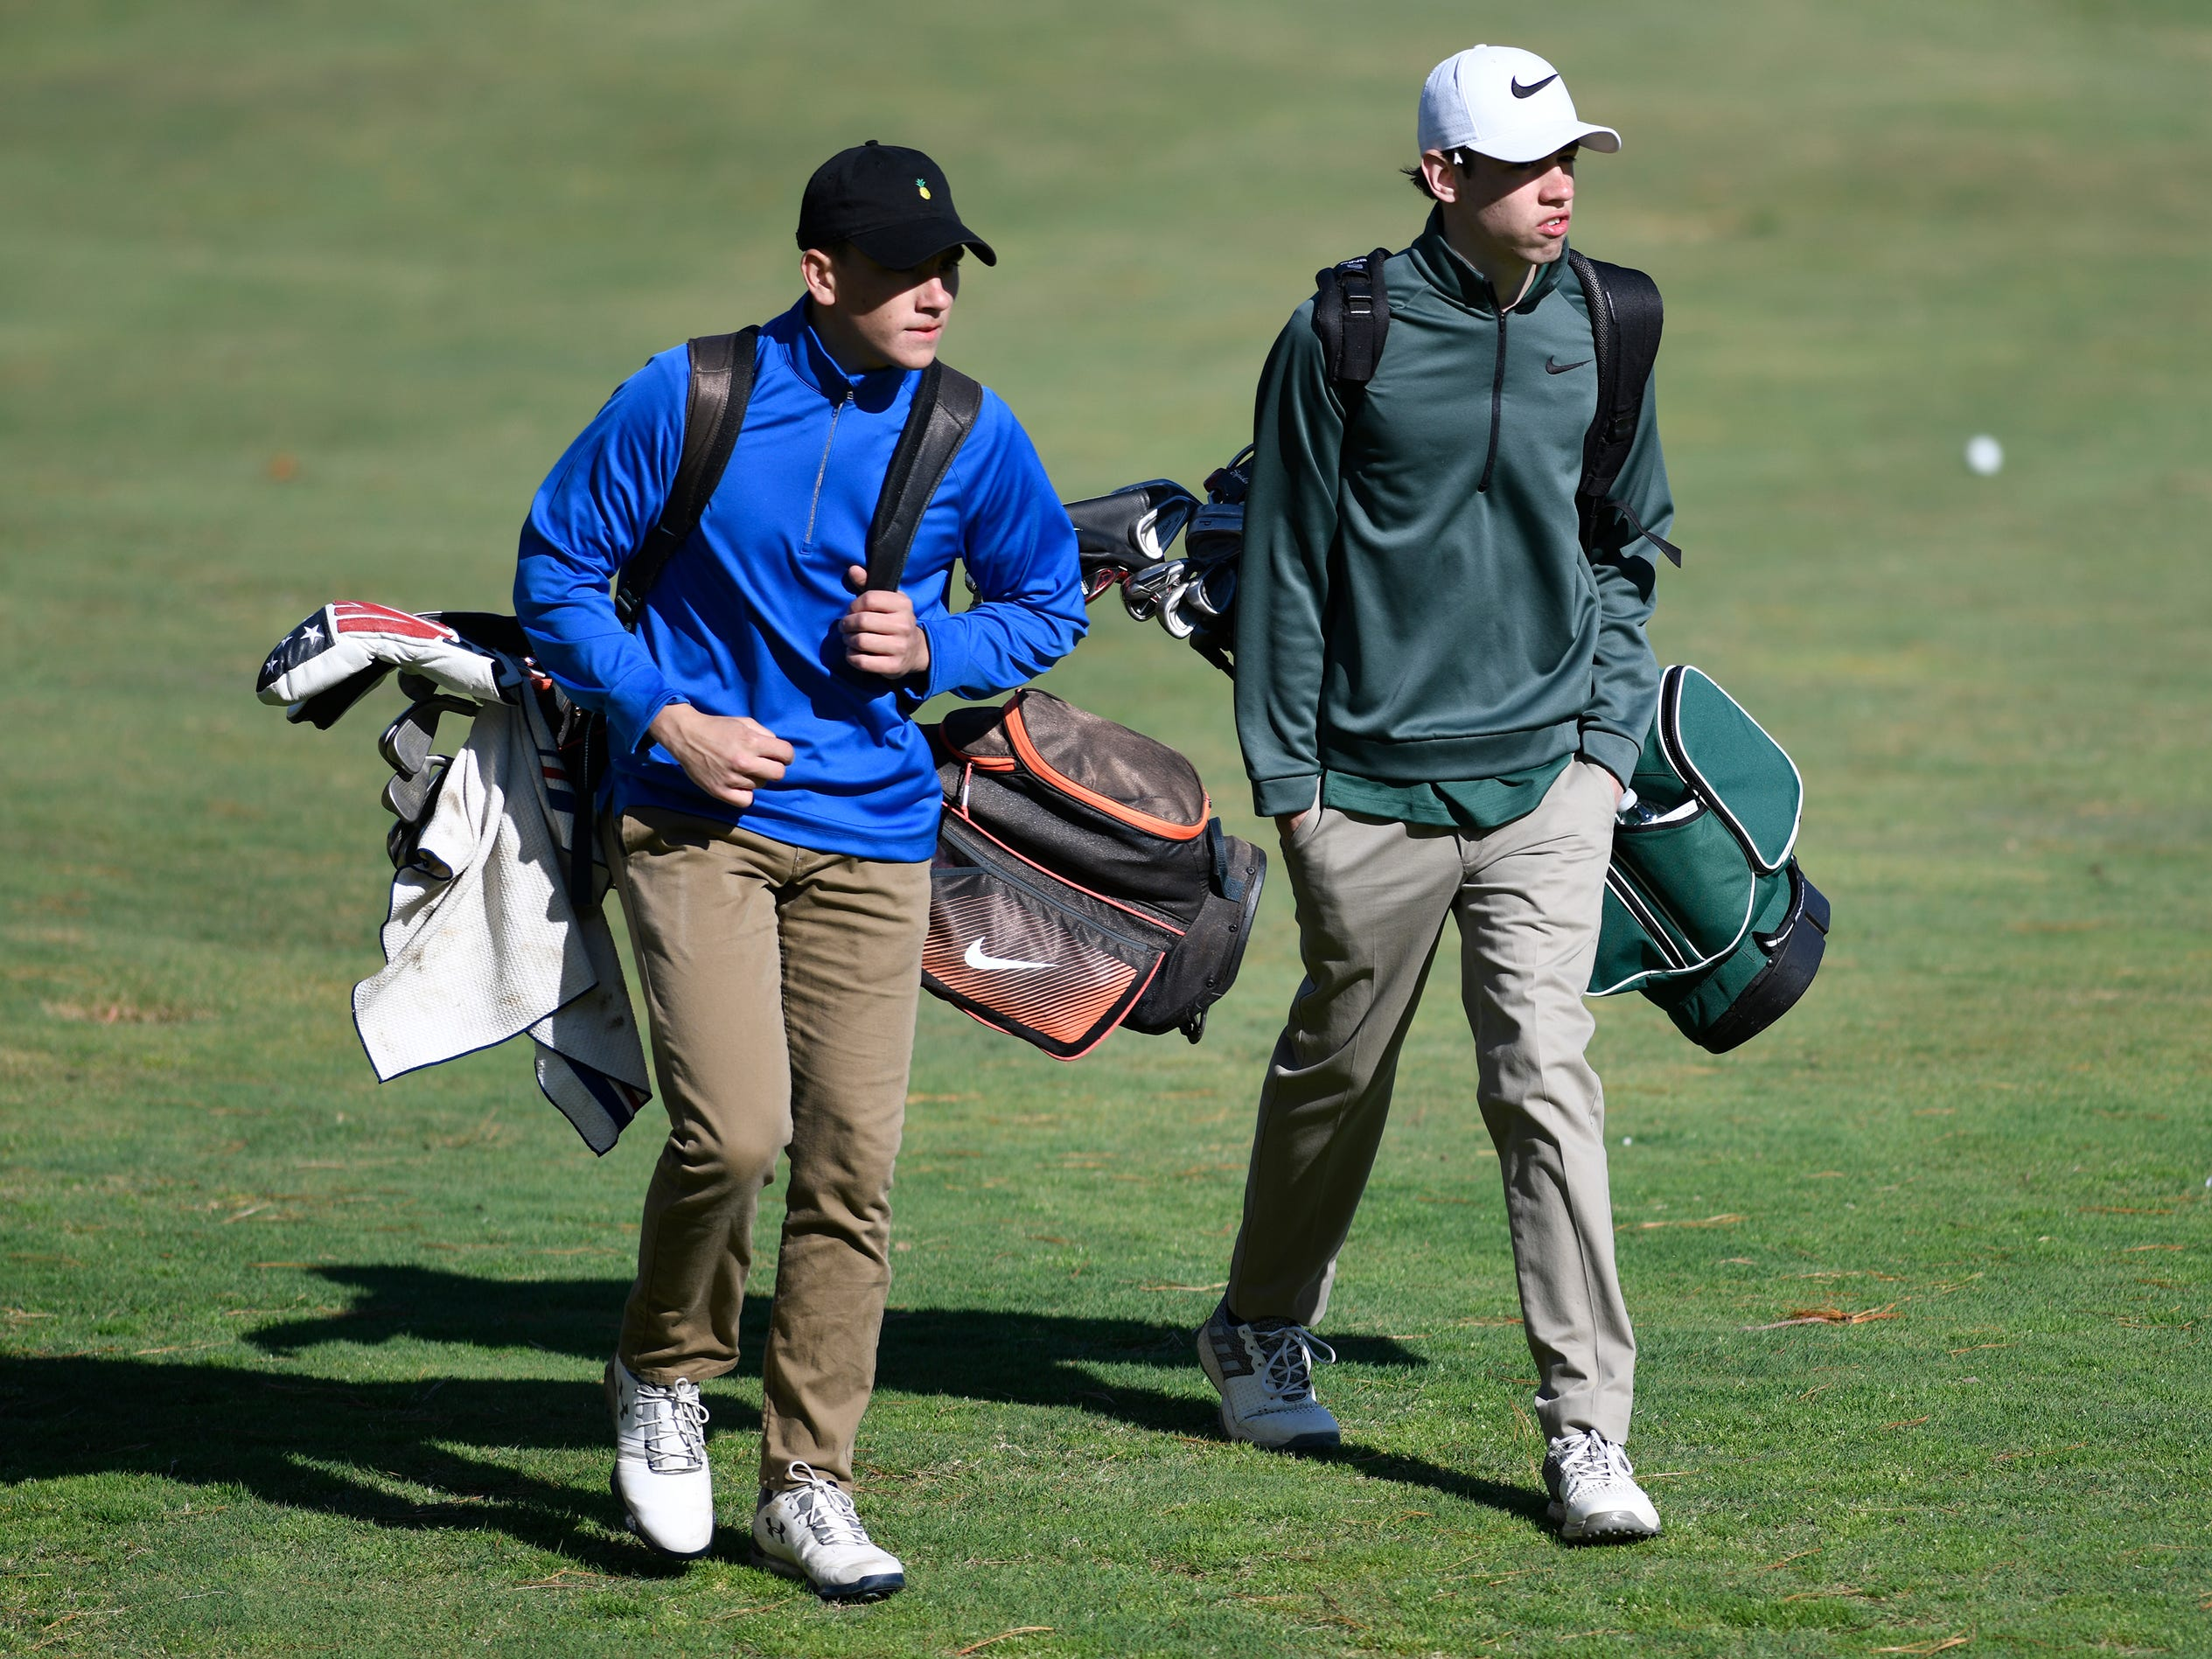 Evan Velasquez of Brick Memorial, left, and Austin Carney of Pinelands Regional competes at the Ocean County Tournament on April 15, 2019,  at Sea Oaks in Little Egg Harbor. Toms River North's Connor Bekefi emerged as the individual champion with a 3-over-par 75, four shots better than teammate Leo Kane. Toms River North successfully defended its team title, posting a total of 336, which was 18 shots better than Southern. Brick Memorial finished third.